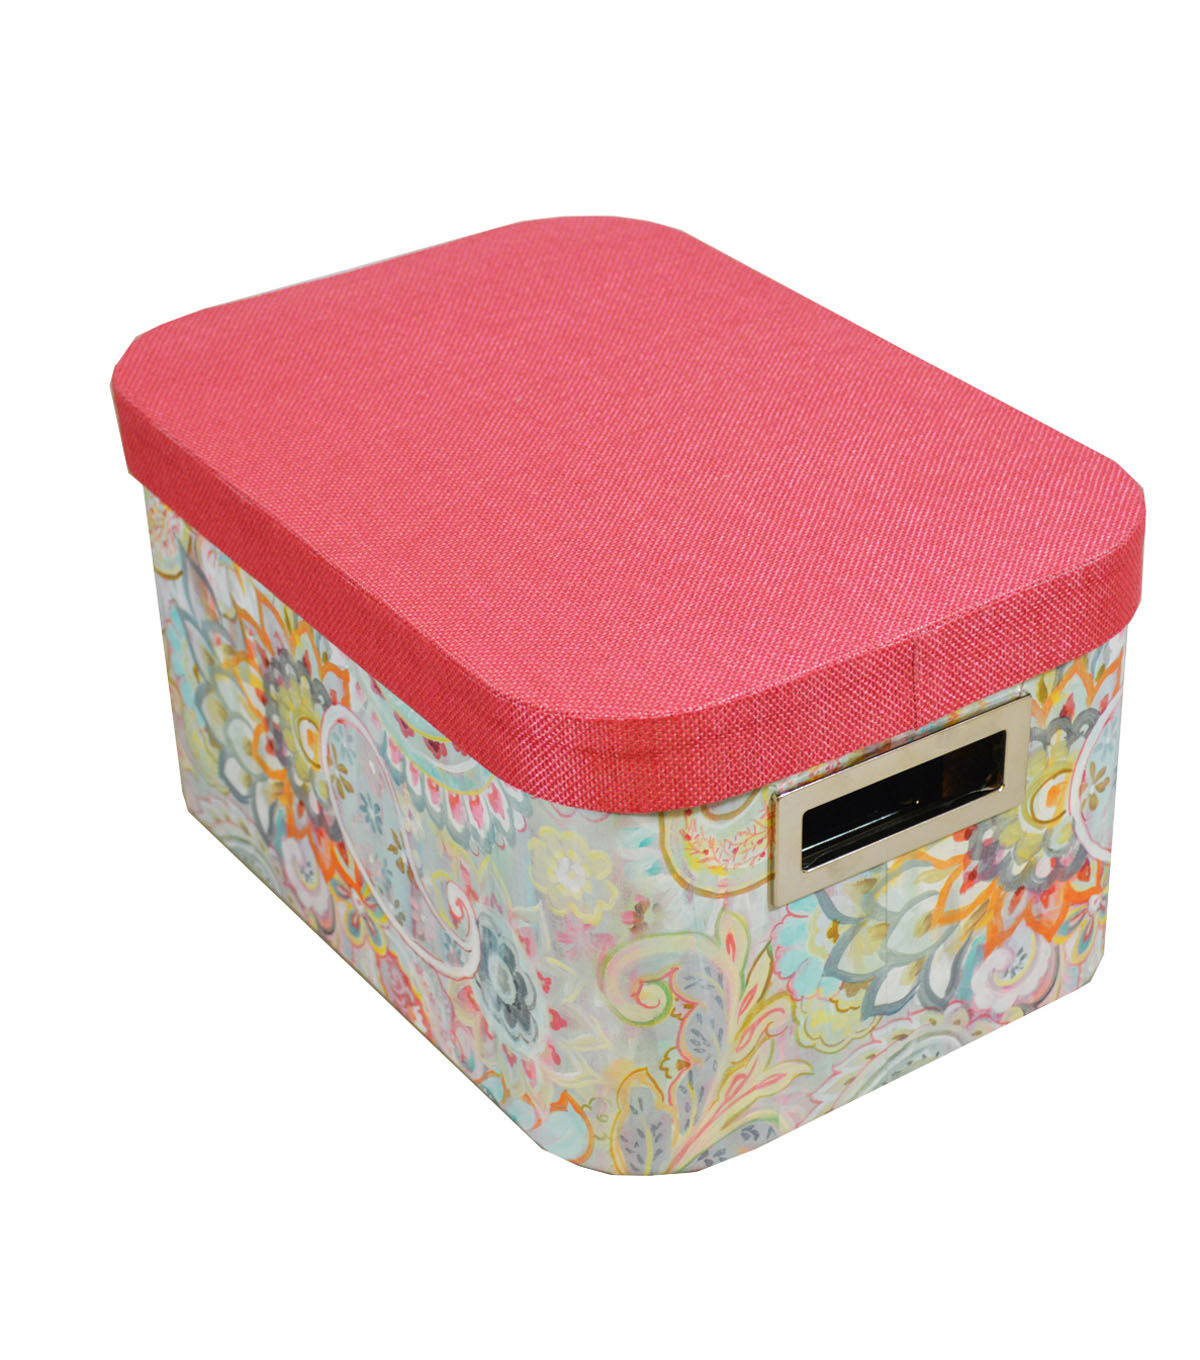 Organizing Essentials Medium Oval Storage Box Boho Japonais